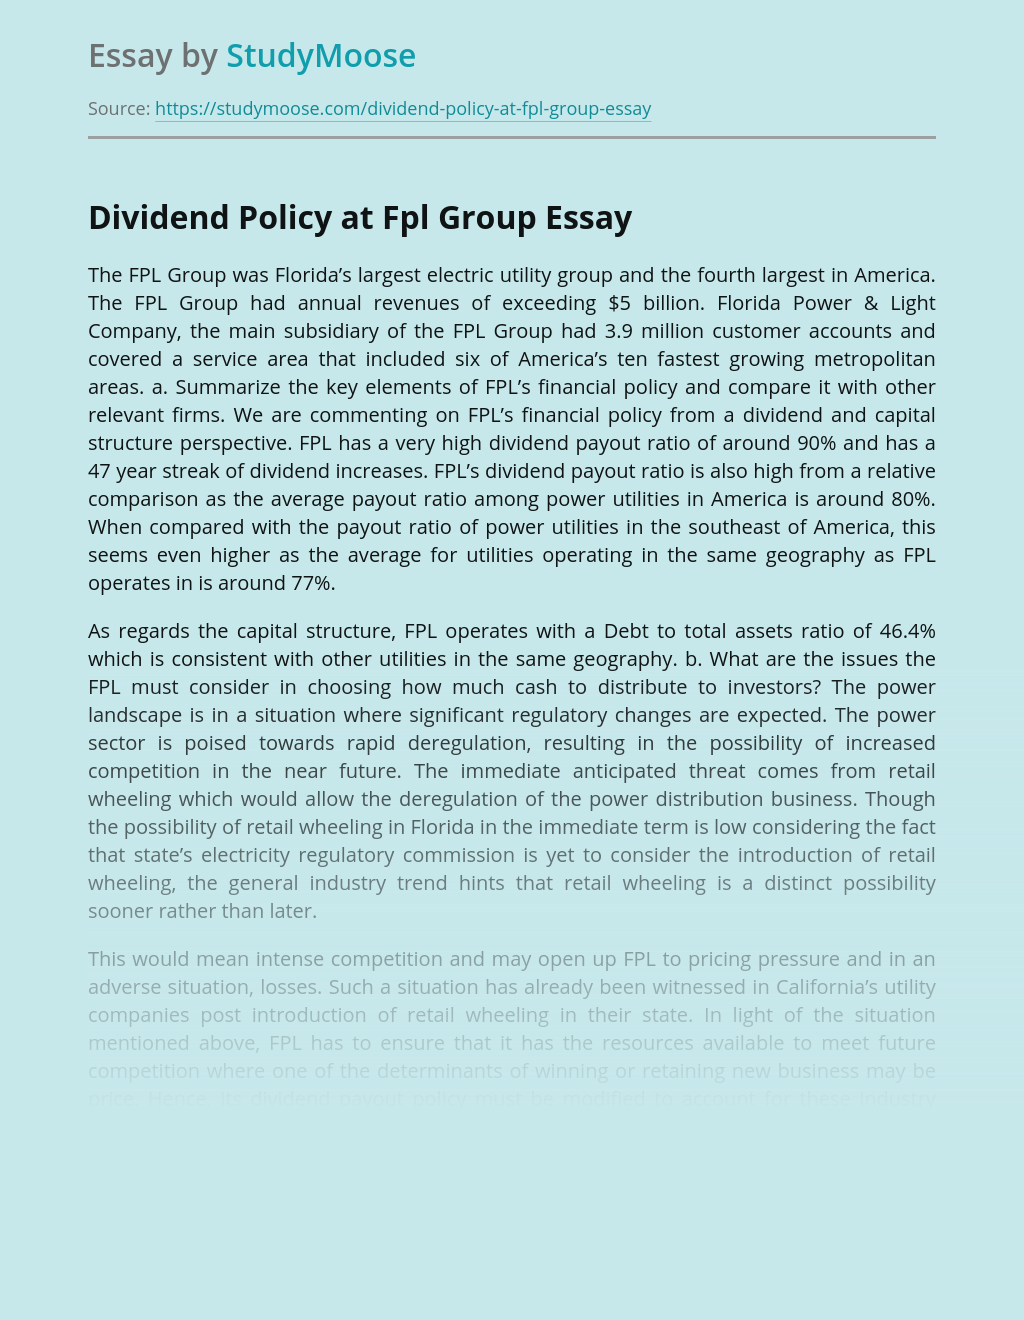 The FPL Group